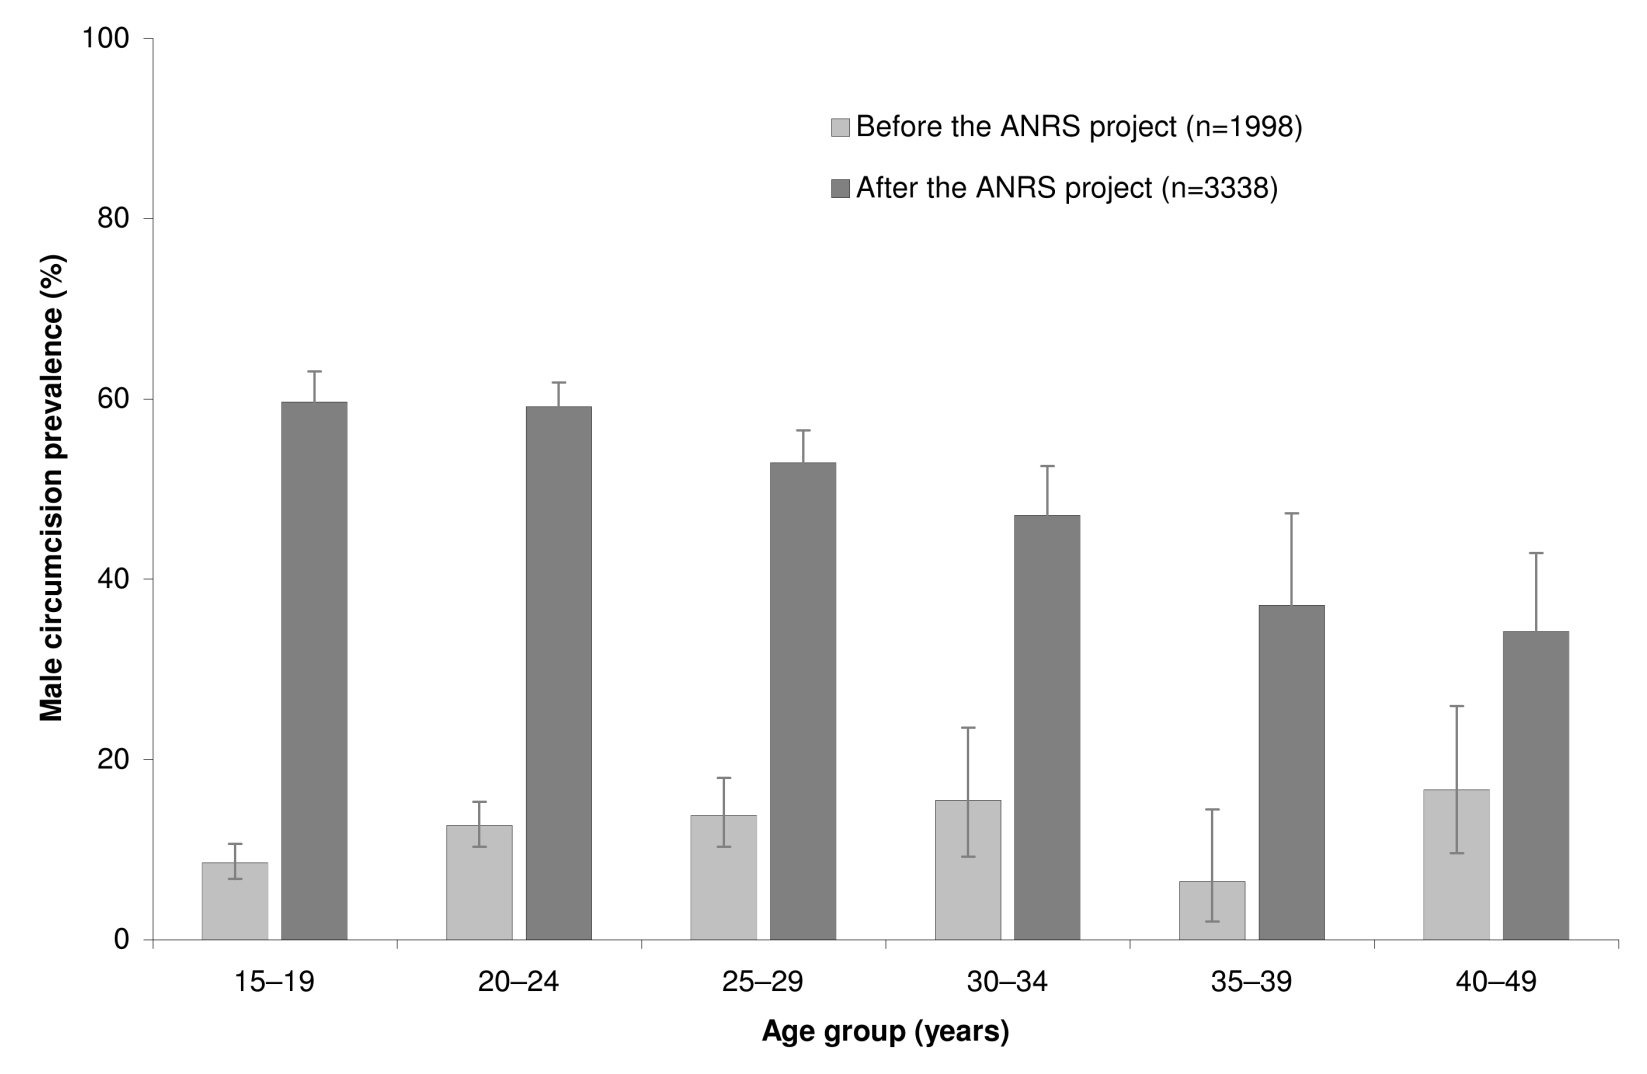 Male circumcision prevalence rates by age group before and after the ANRS project in the community of Orange Farm (South Africa).